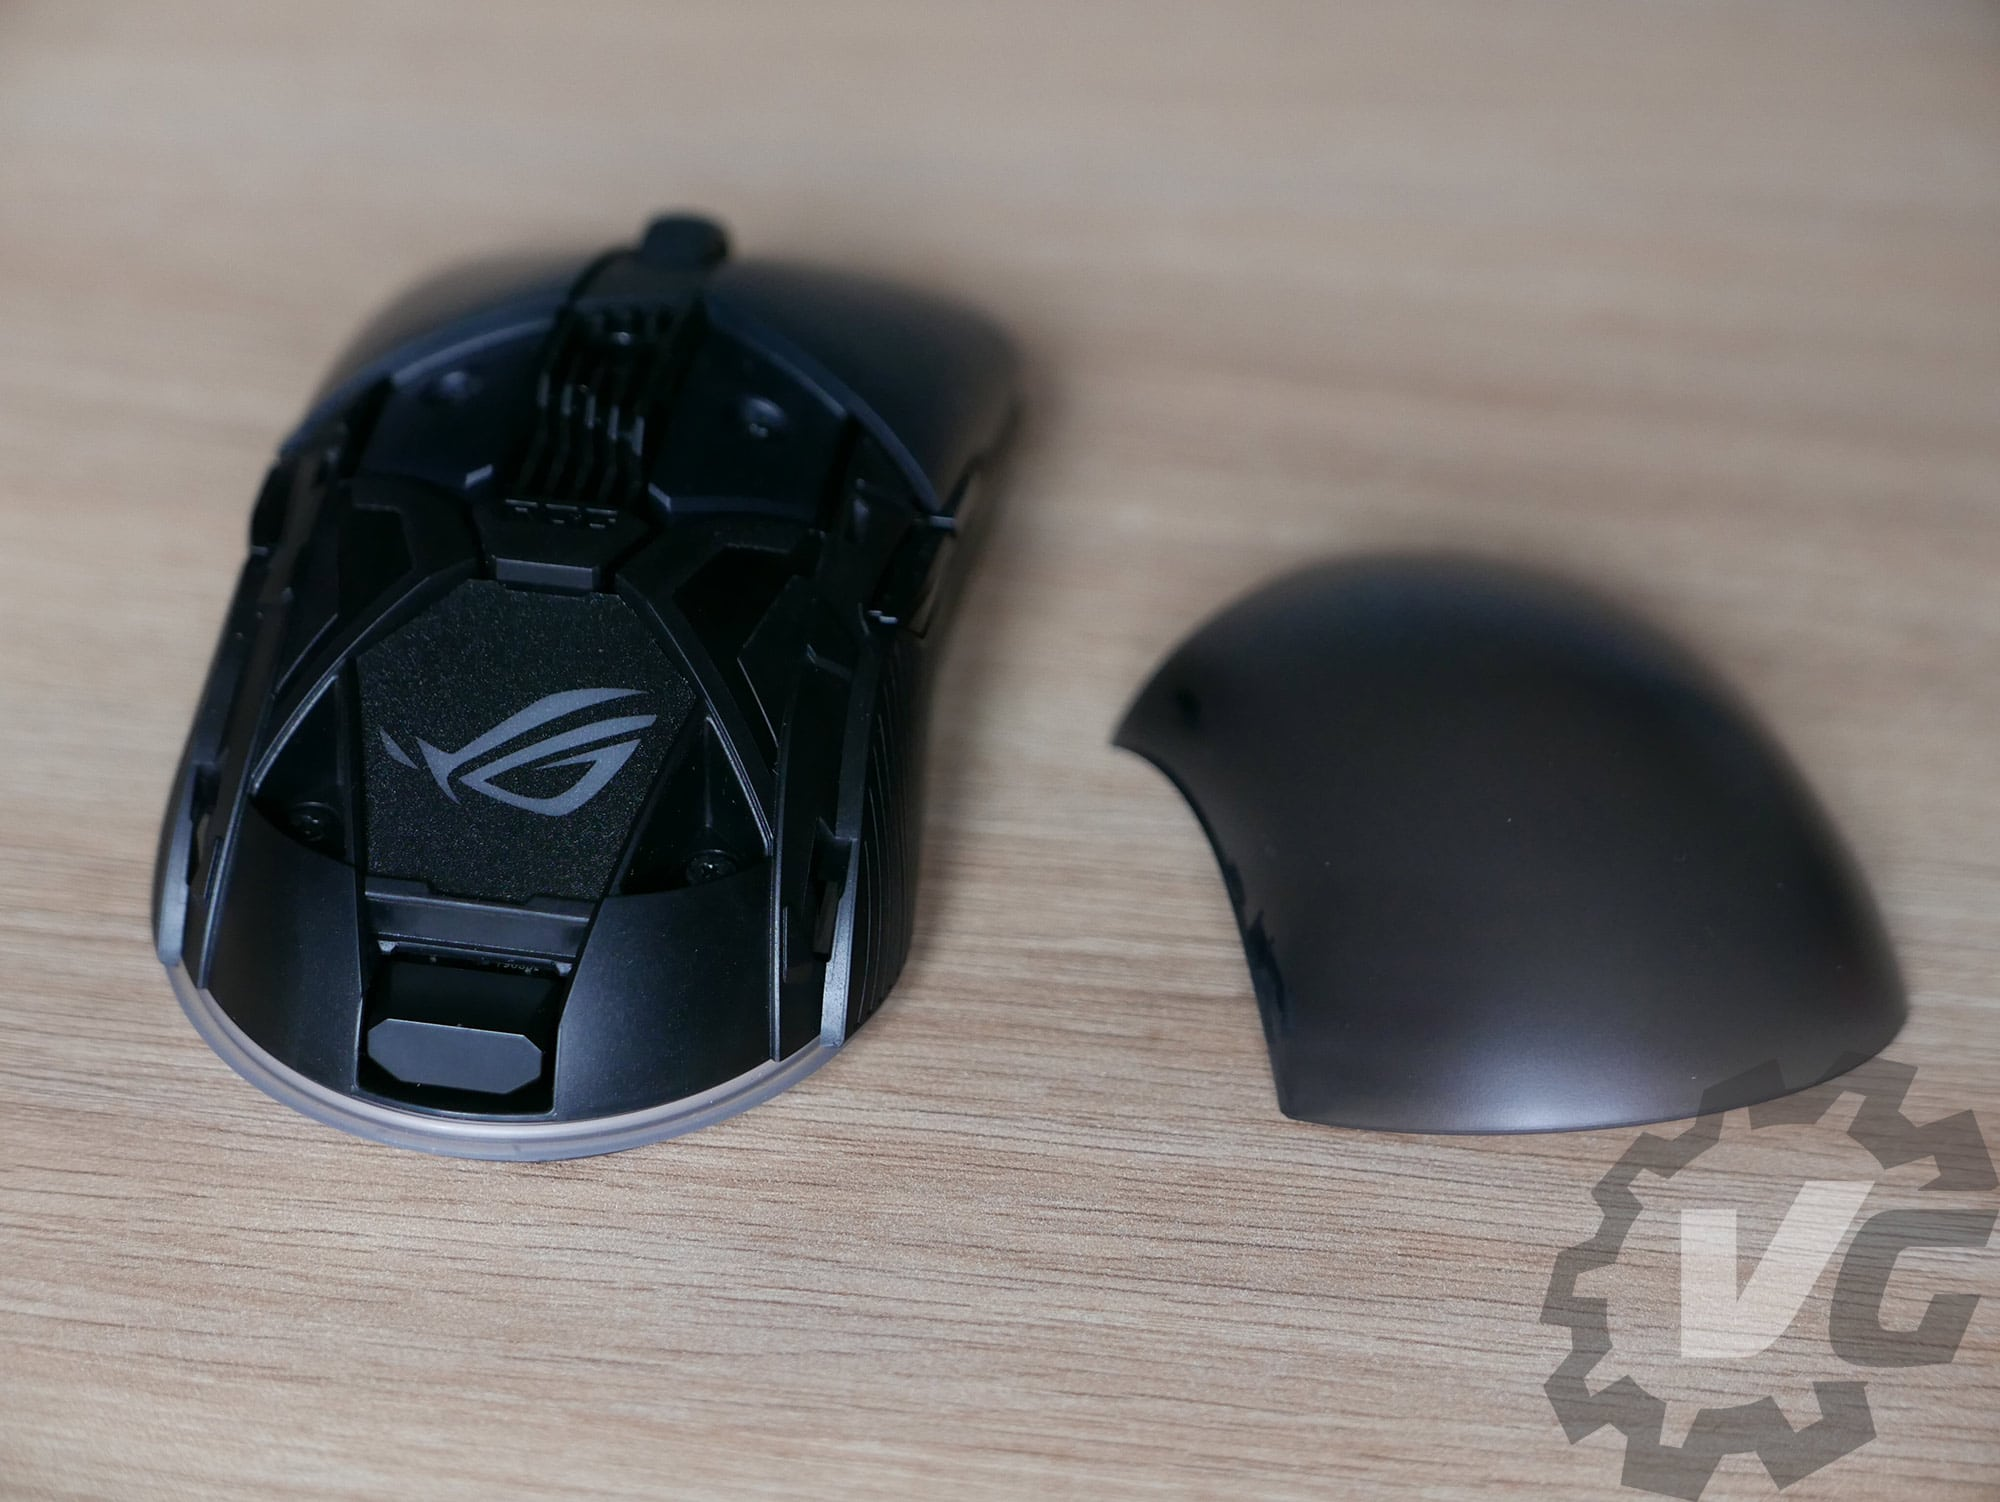 Asus ROG Pugio II couvercle